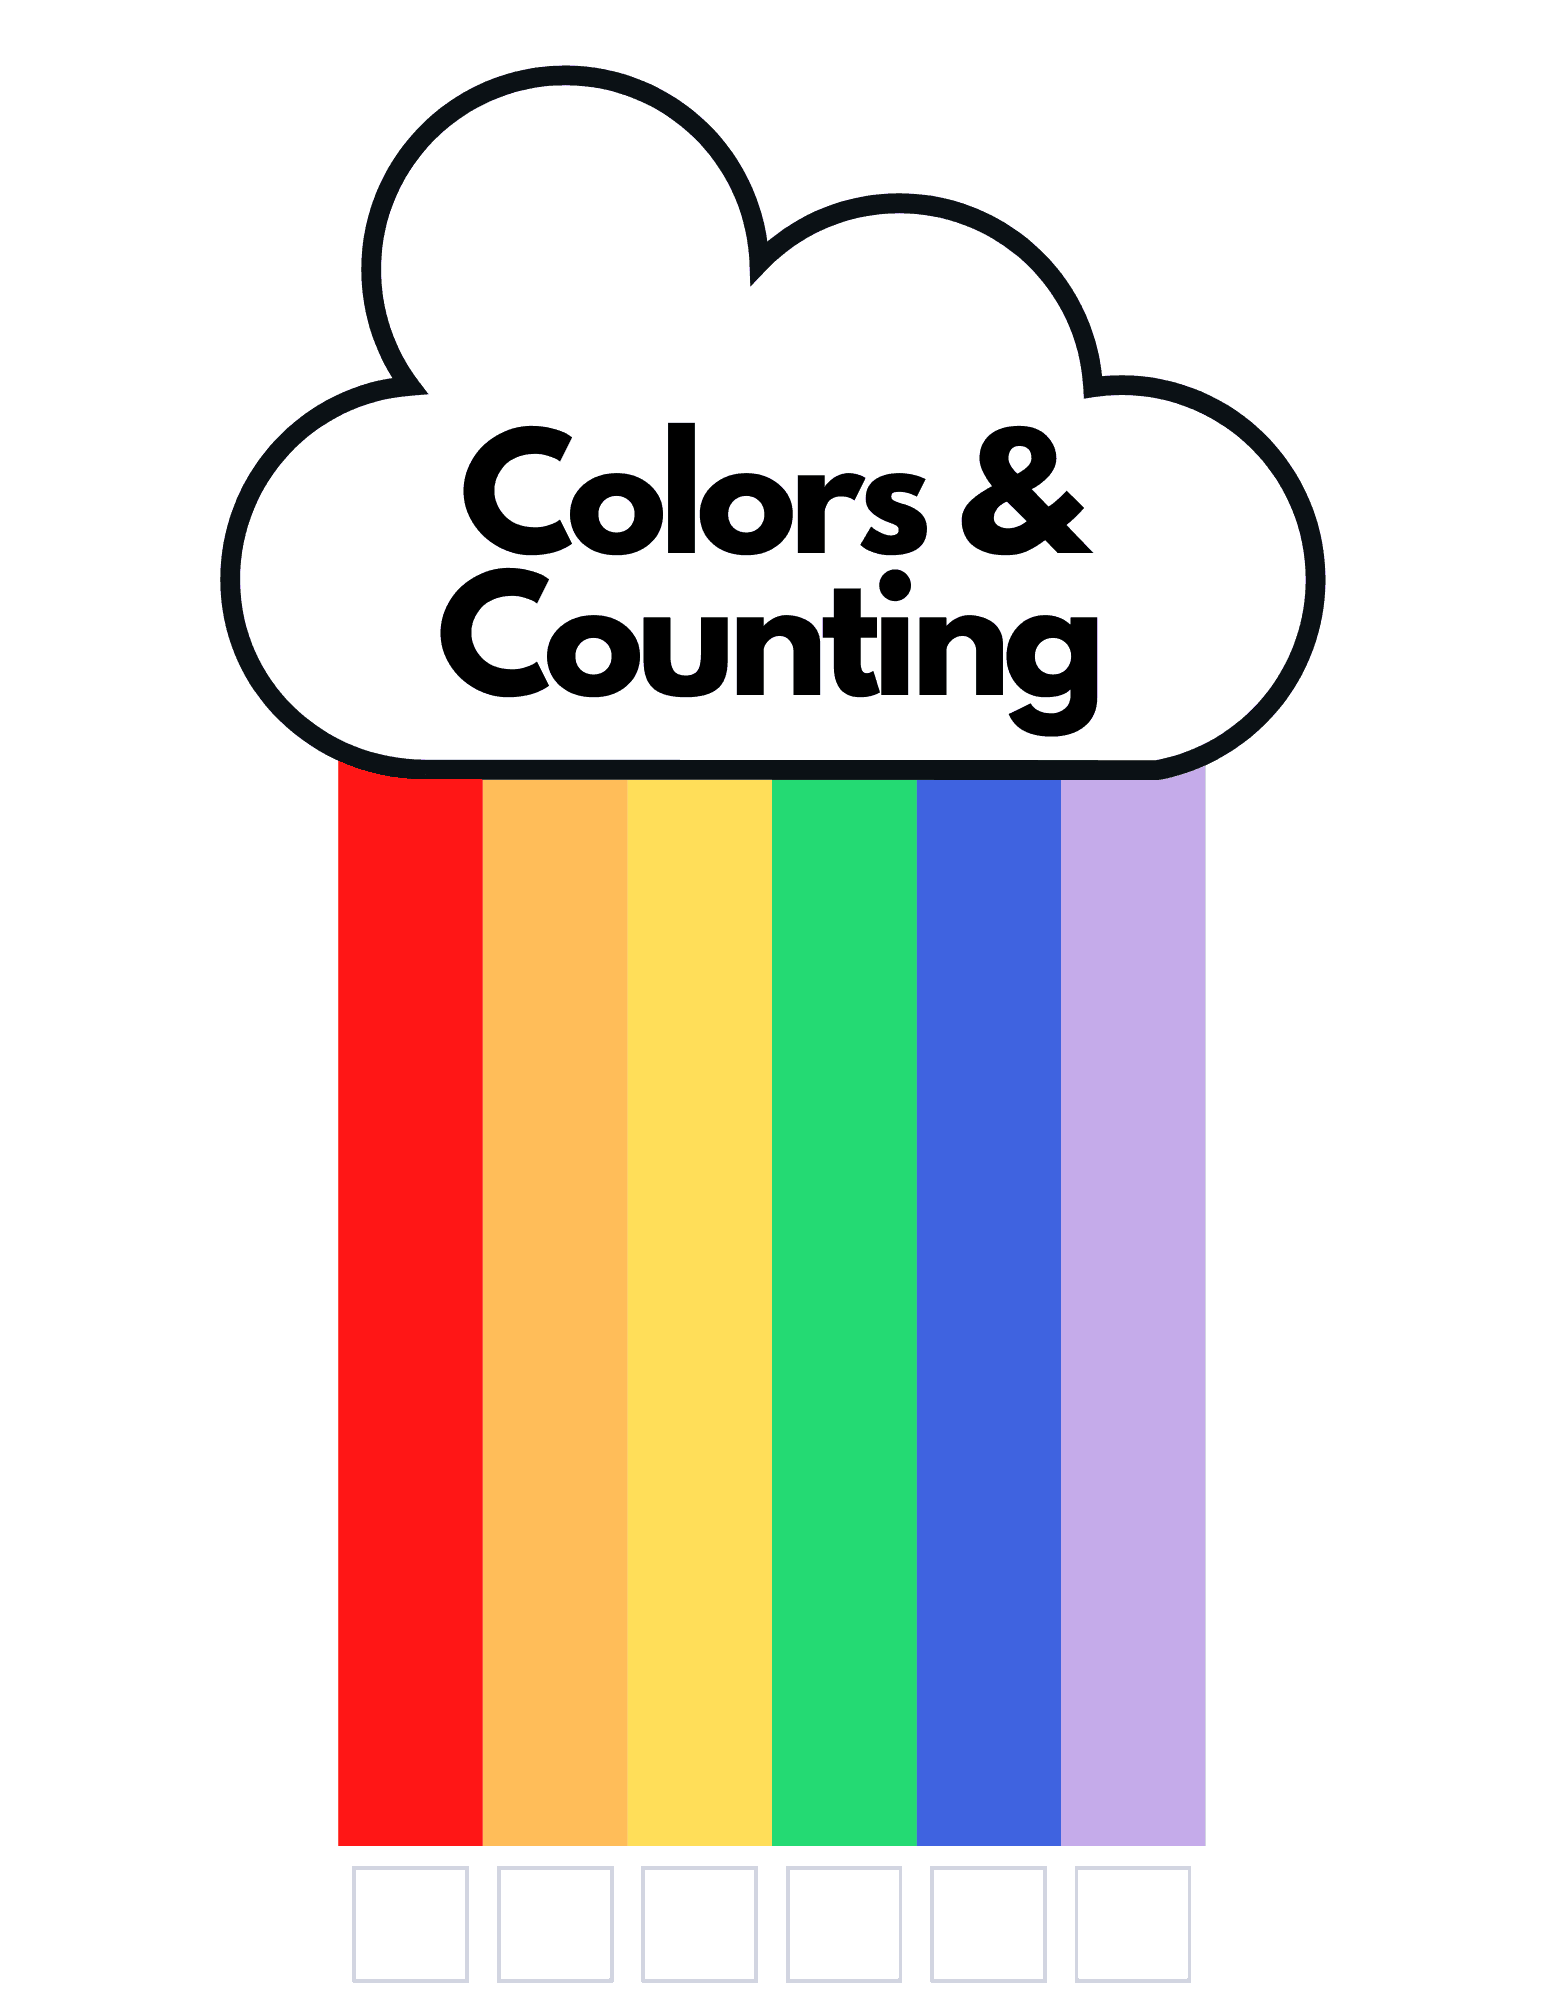 Colors and counting rainbow activity